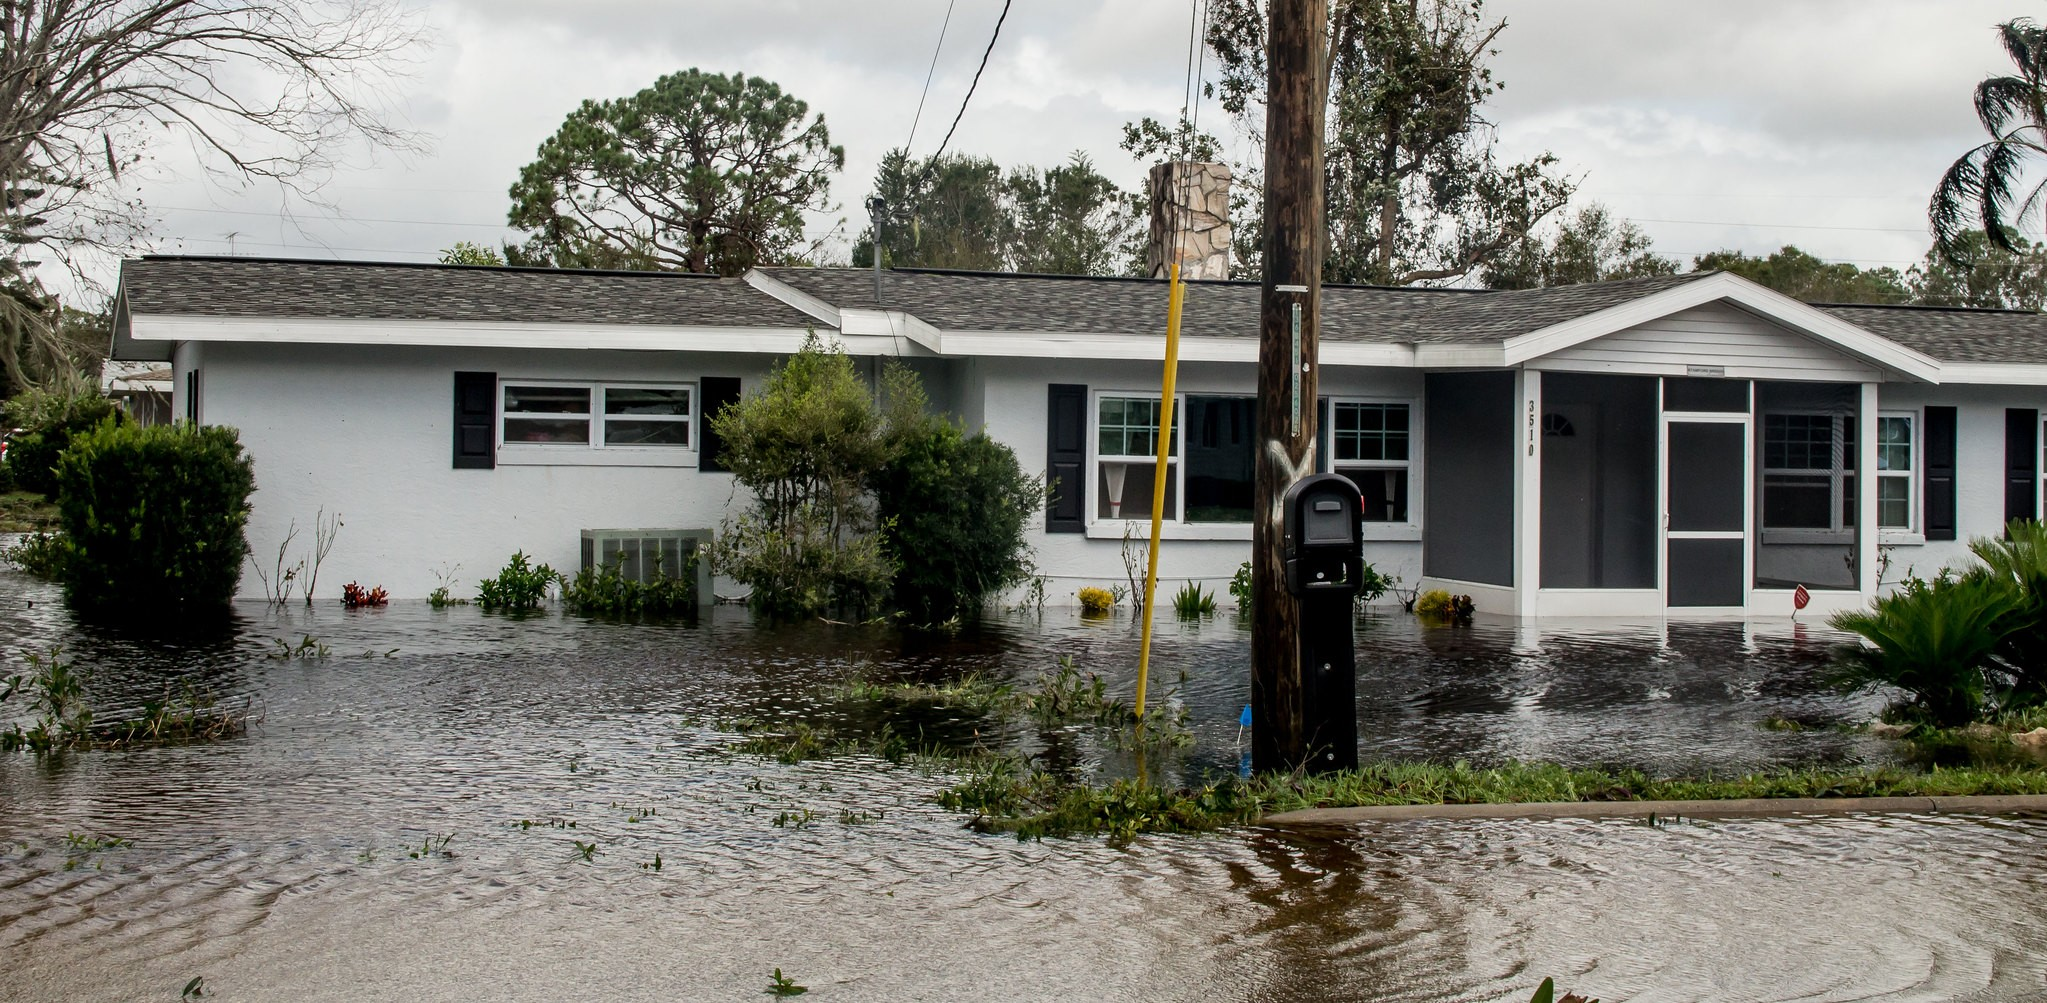 Climate change has caused billions of dollars in flood damages, according to Stanford researchers